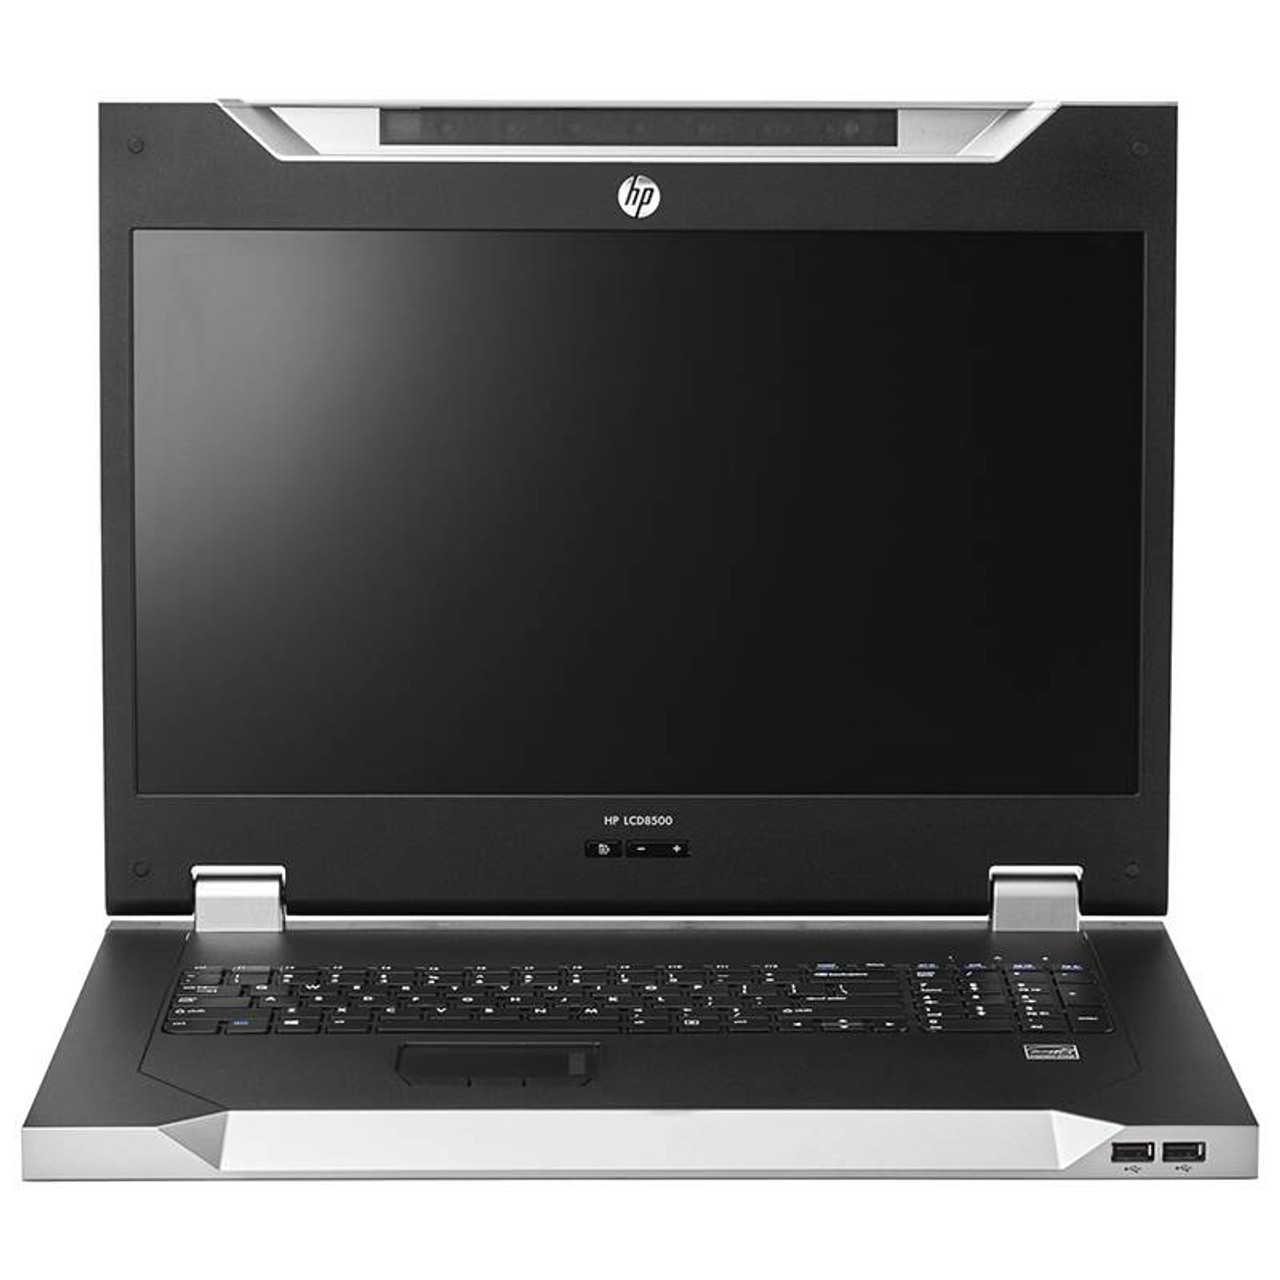 Image for HPE LCD8500 18.5in WXGA 1U INTL LCD Rackmount Console Kit CX Computer Superstore